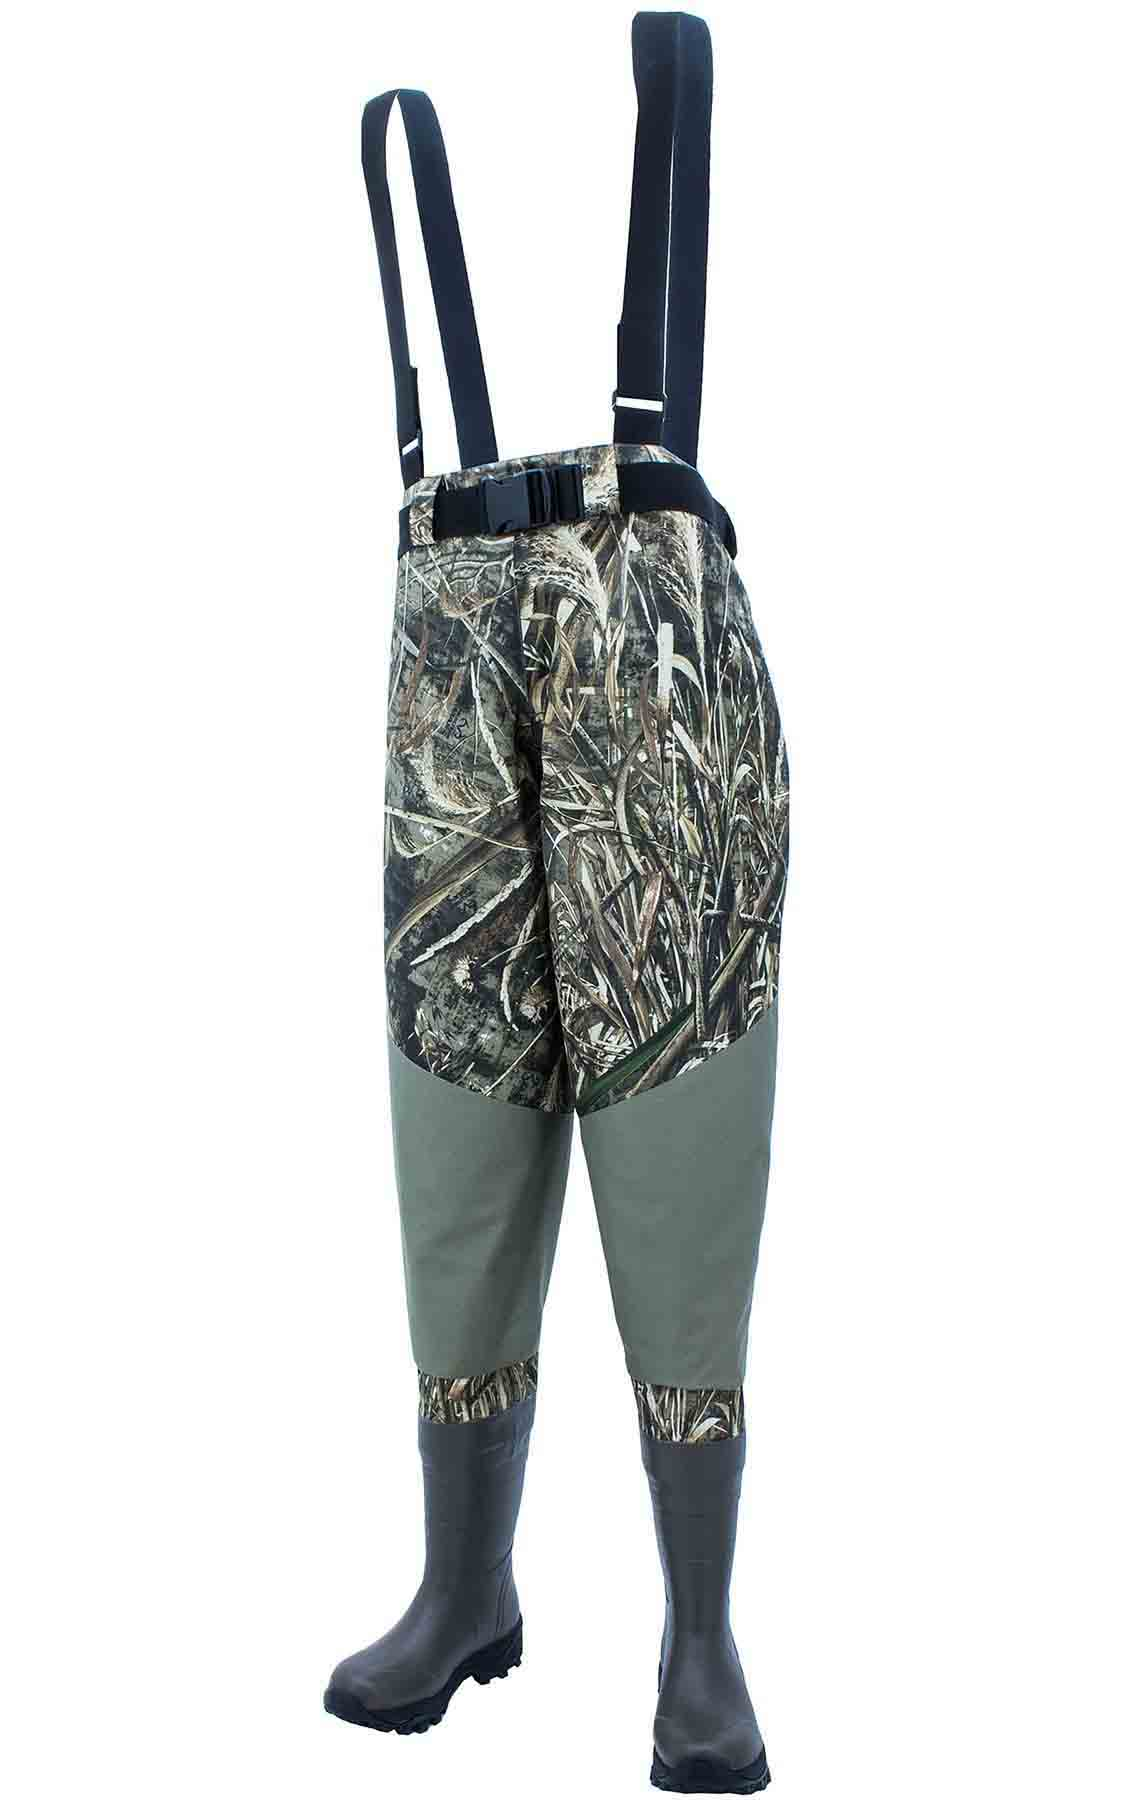 Rogers TOUGHMAN 2-in-1 Insulated Breathable Waist Wader, Realtree Max 5 - Regular Sizes_1.jpg